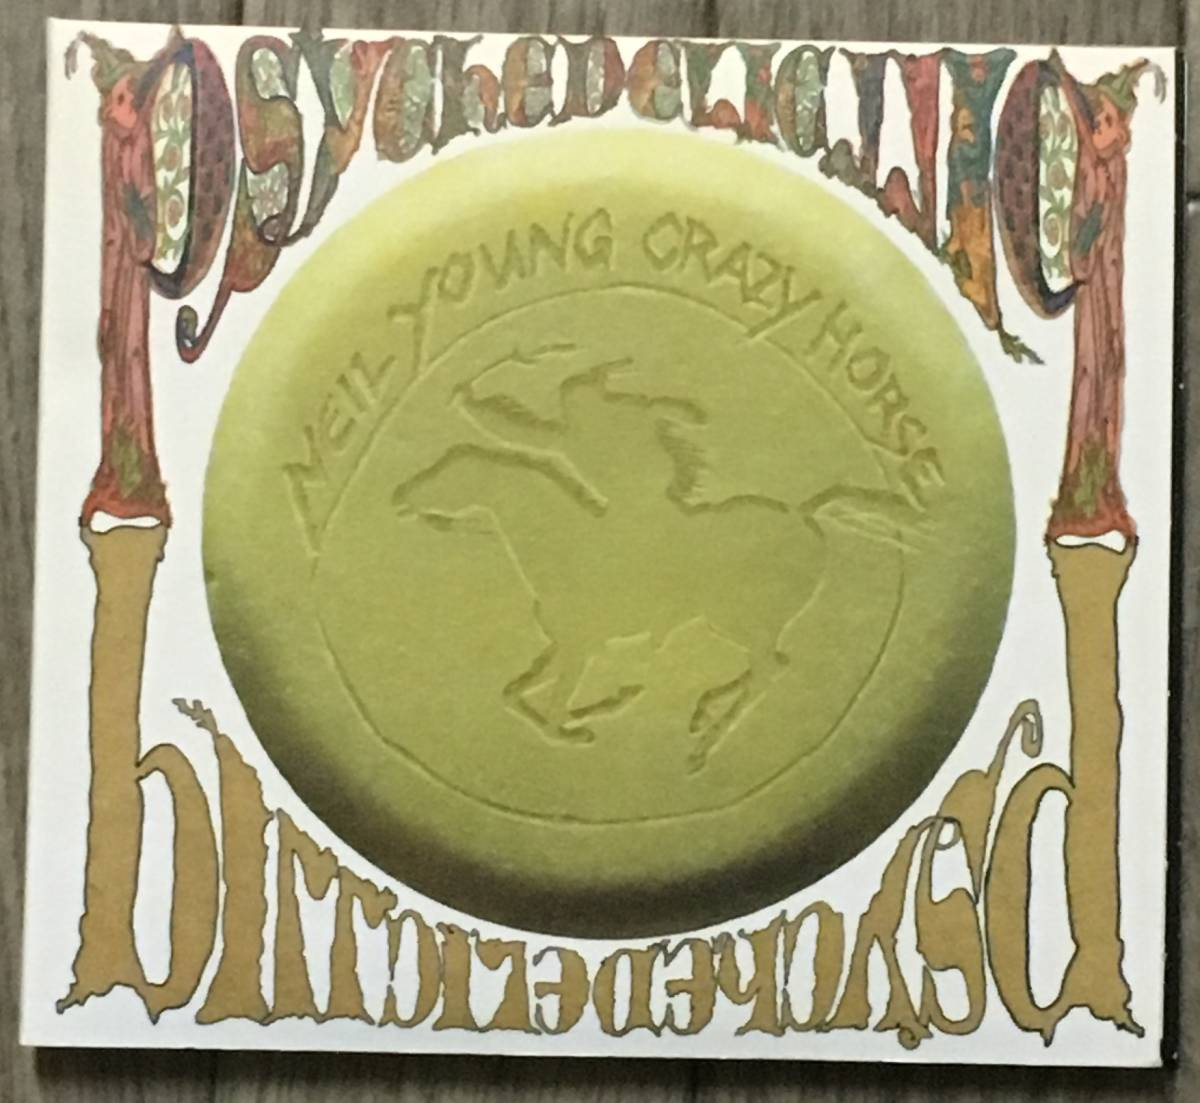 Neil Young with Crazy Horse☆Psychedelic Pill☆2CD☆輸入盤☆美品☆ニール・ヤング クレイジー・ホース☆『サイケデリック・ピル』_画像1